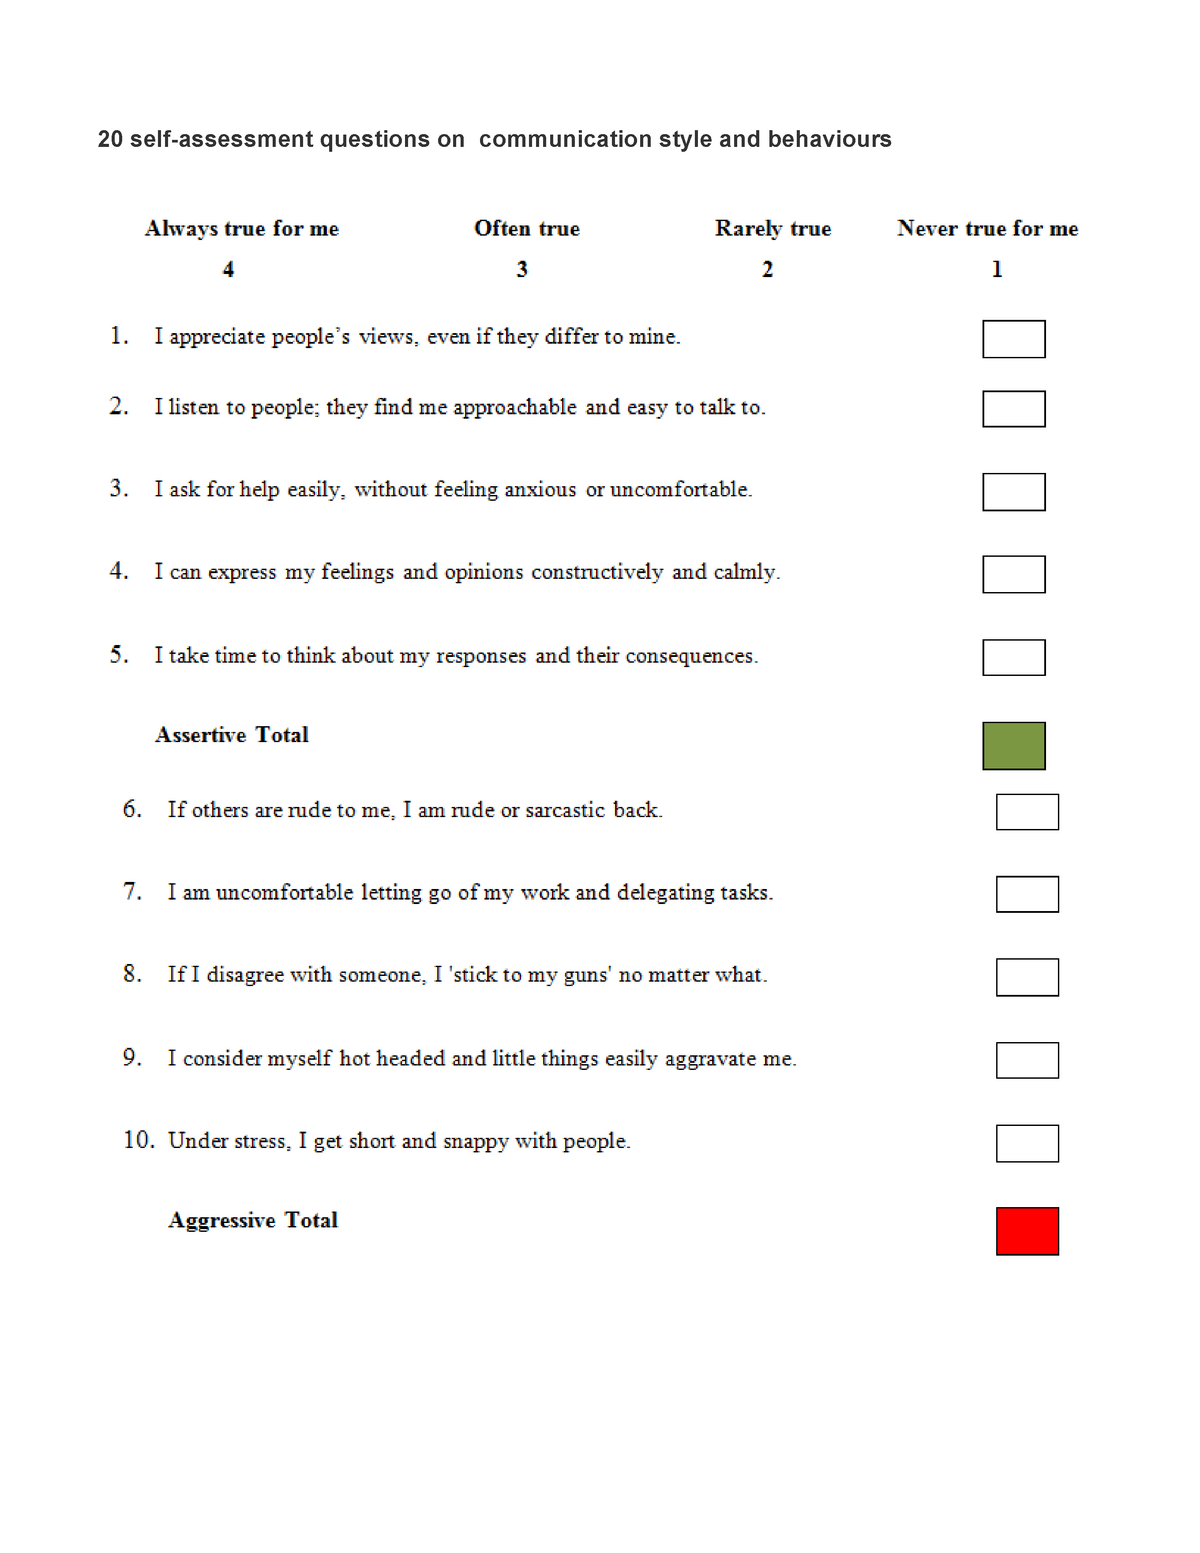 EEE1 communication and behaviour questionnaire TRIM B WK 7